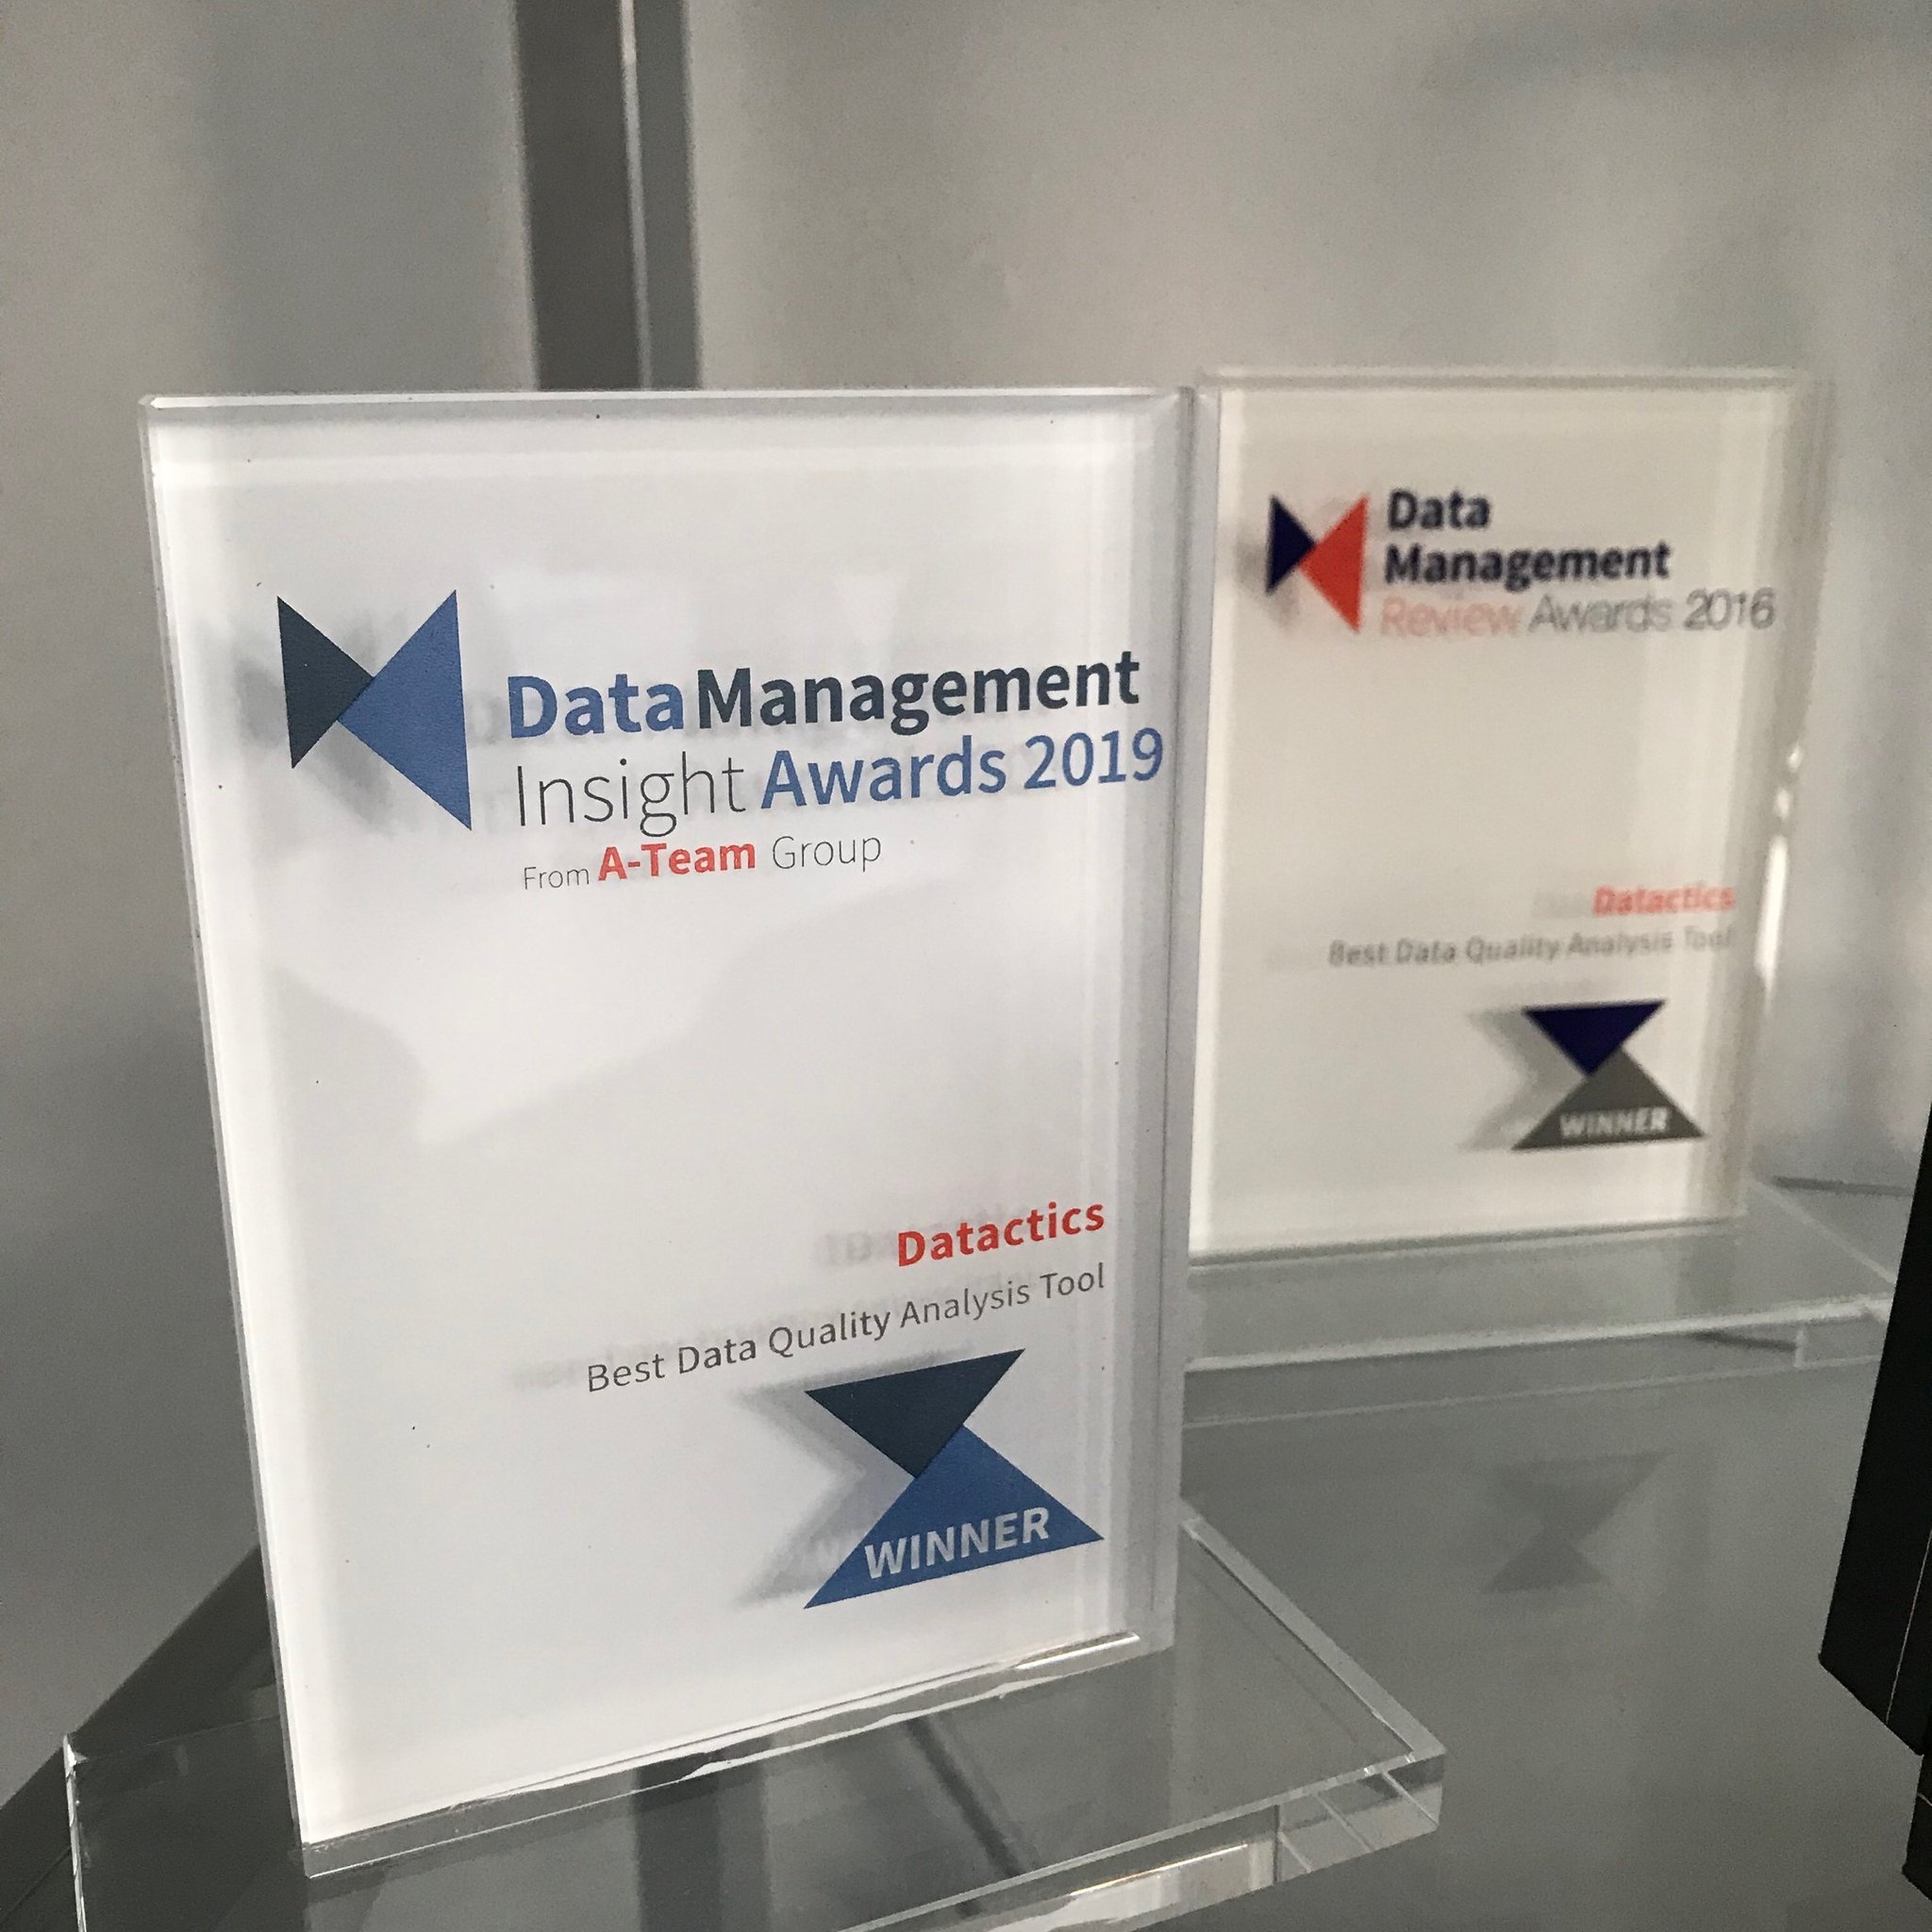 "Datactics on Twitter: ""🏅Best Data Quality Analysis Tool 🥇 With more votes  this year than any past editions, these are the most prestigious awards in  the #DataManagement industry and we are delighted"